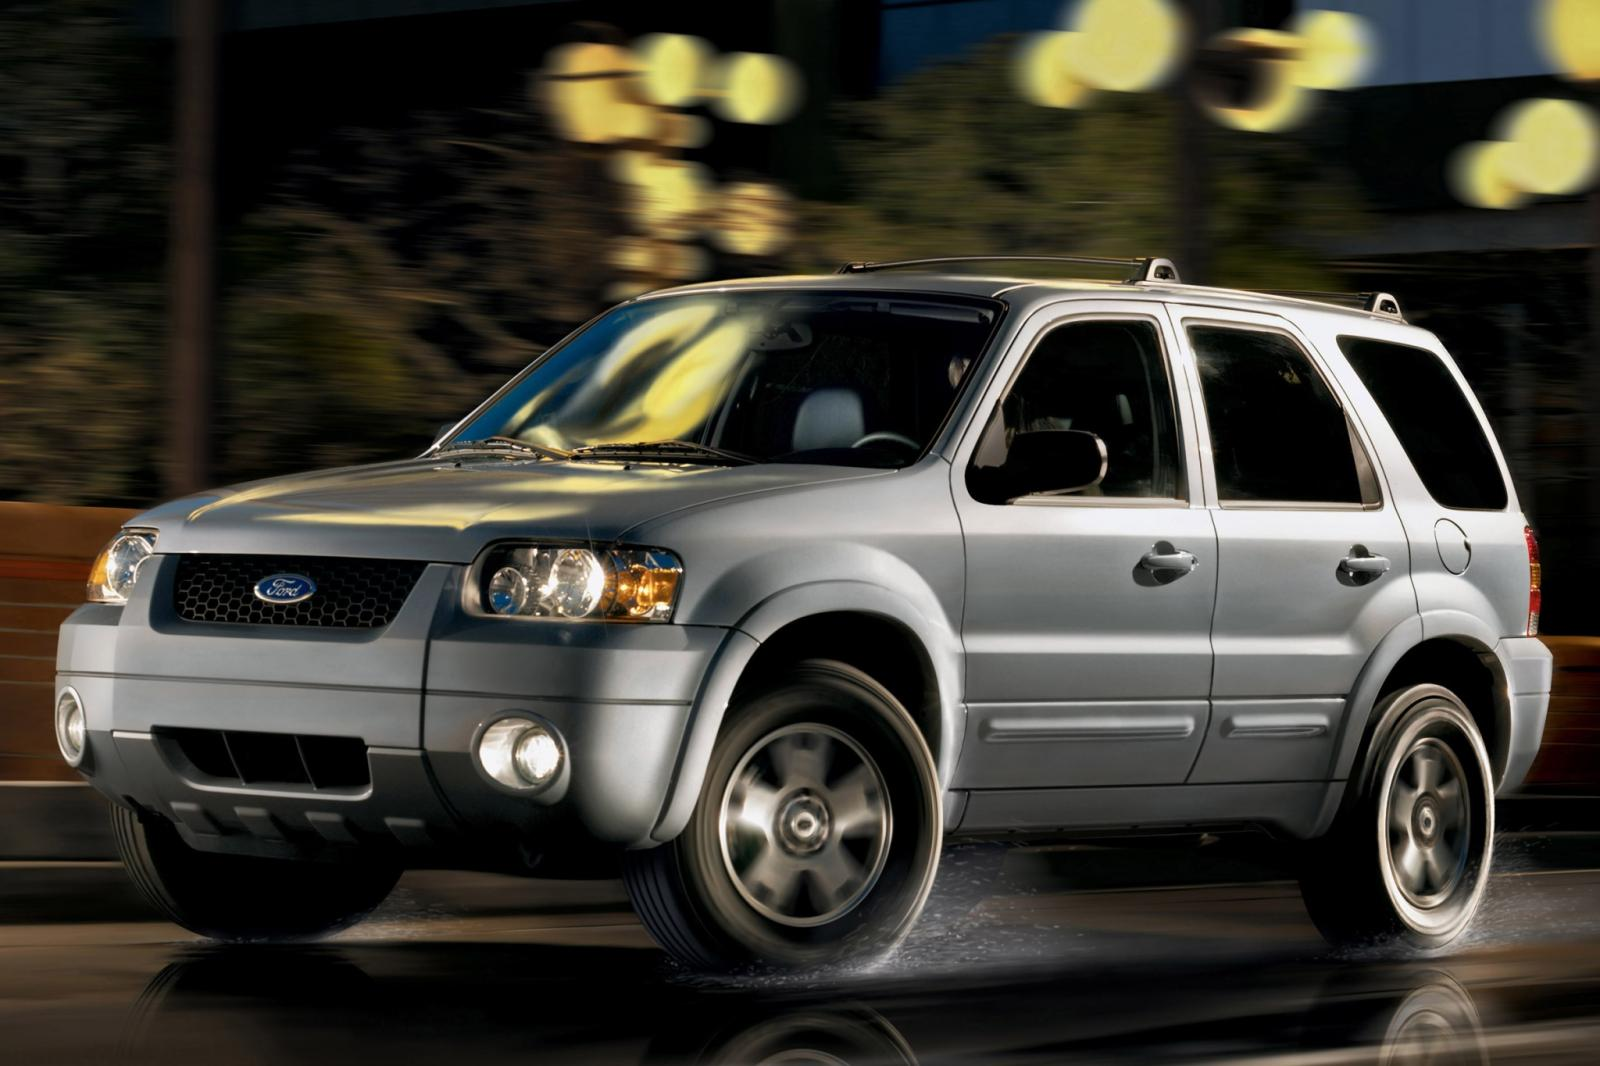 2007 ford escape information and photos zombiedrive. Black Bedroom Furniture Sets. Home Design Ideas